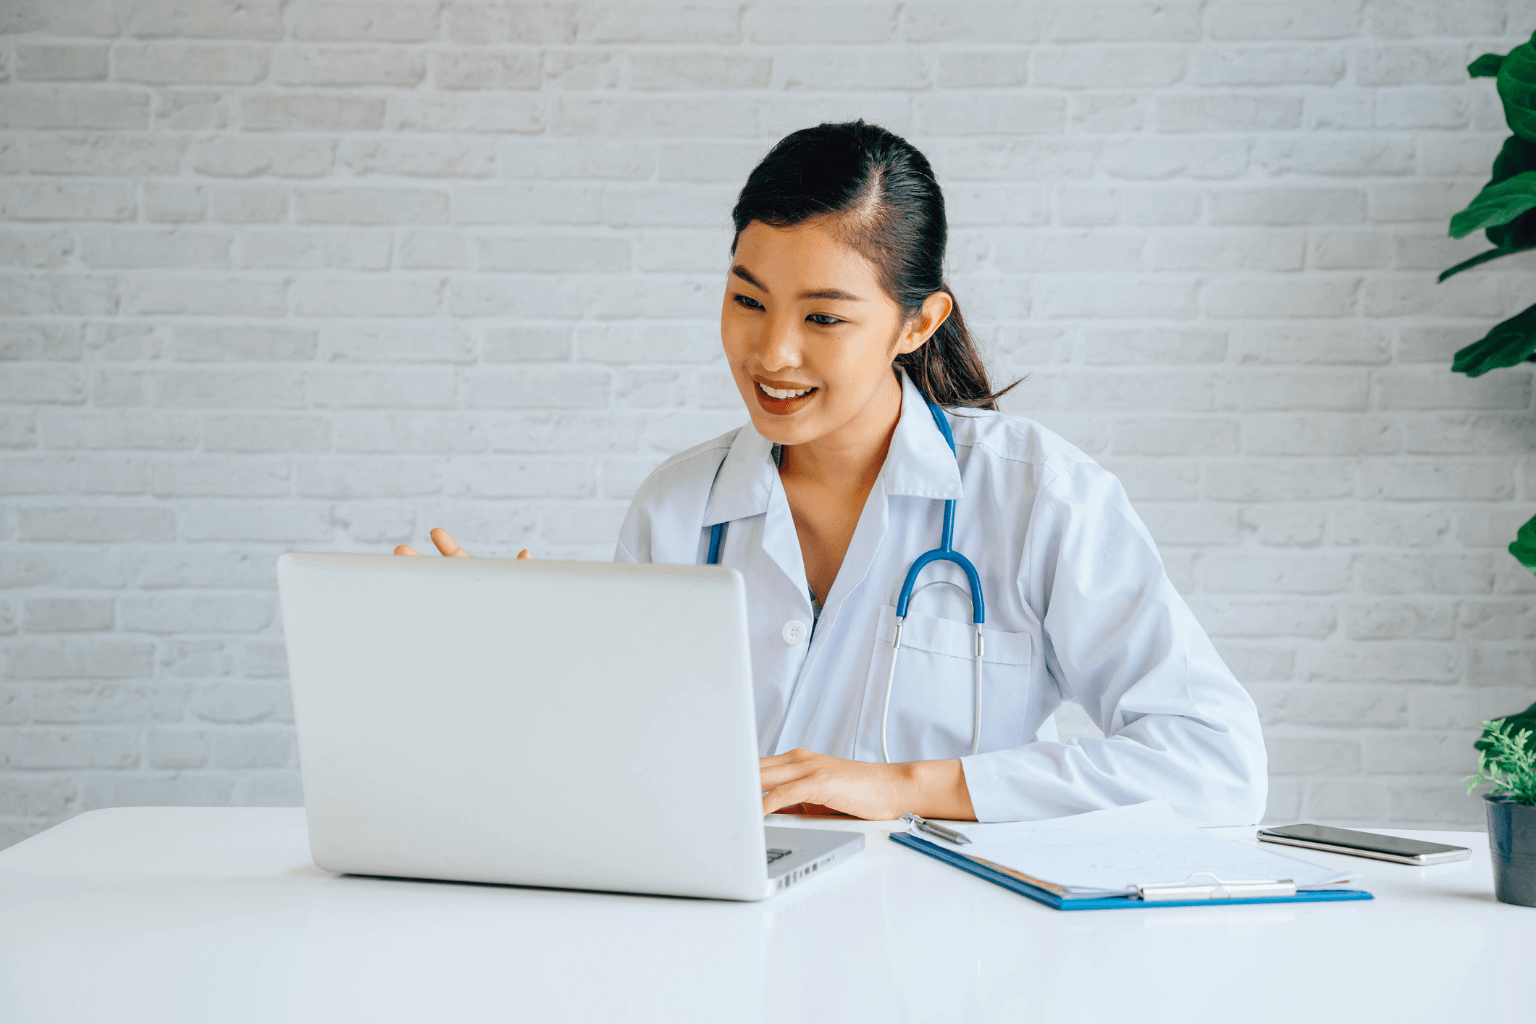 Asian female doctor working on a laptop